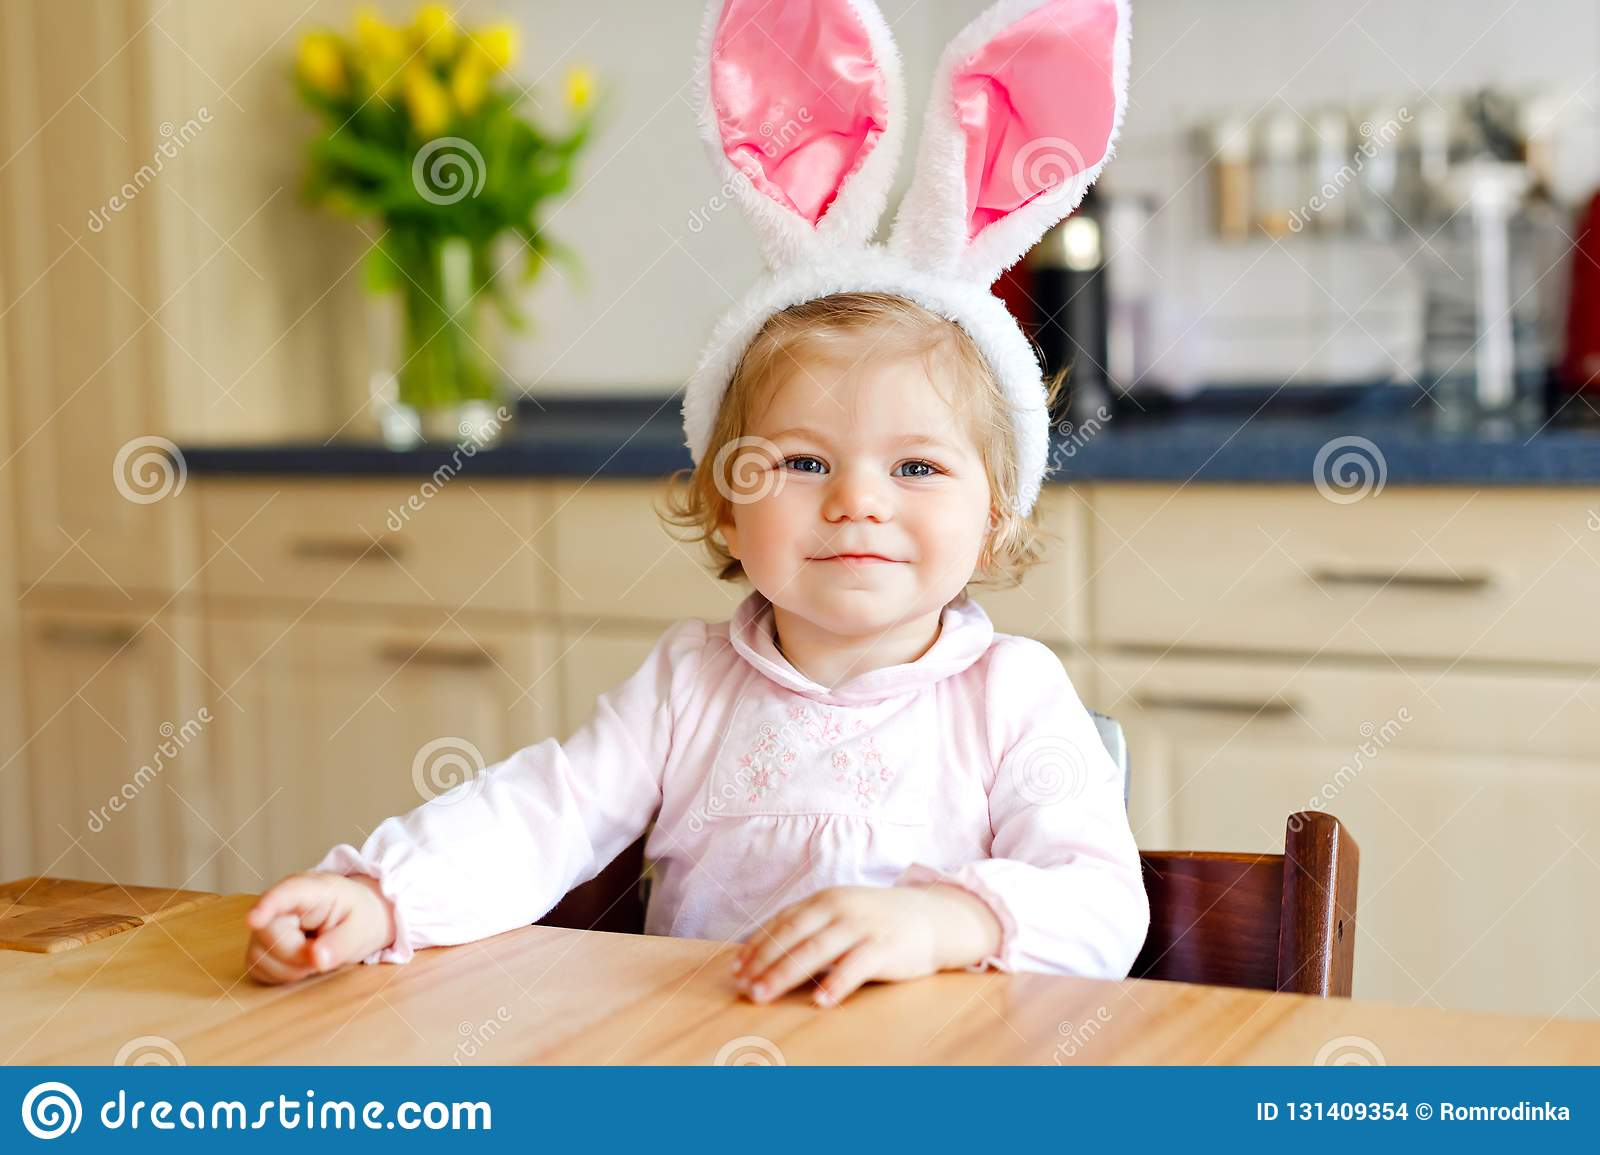 Cute little toddler girl wearing Easter bunny ears playing with colored pastel eggs. Happy baby child unpacking gifts